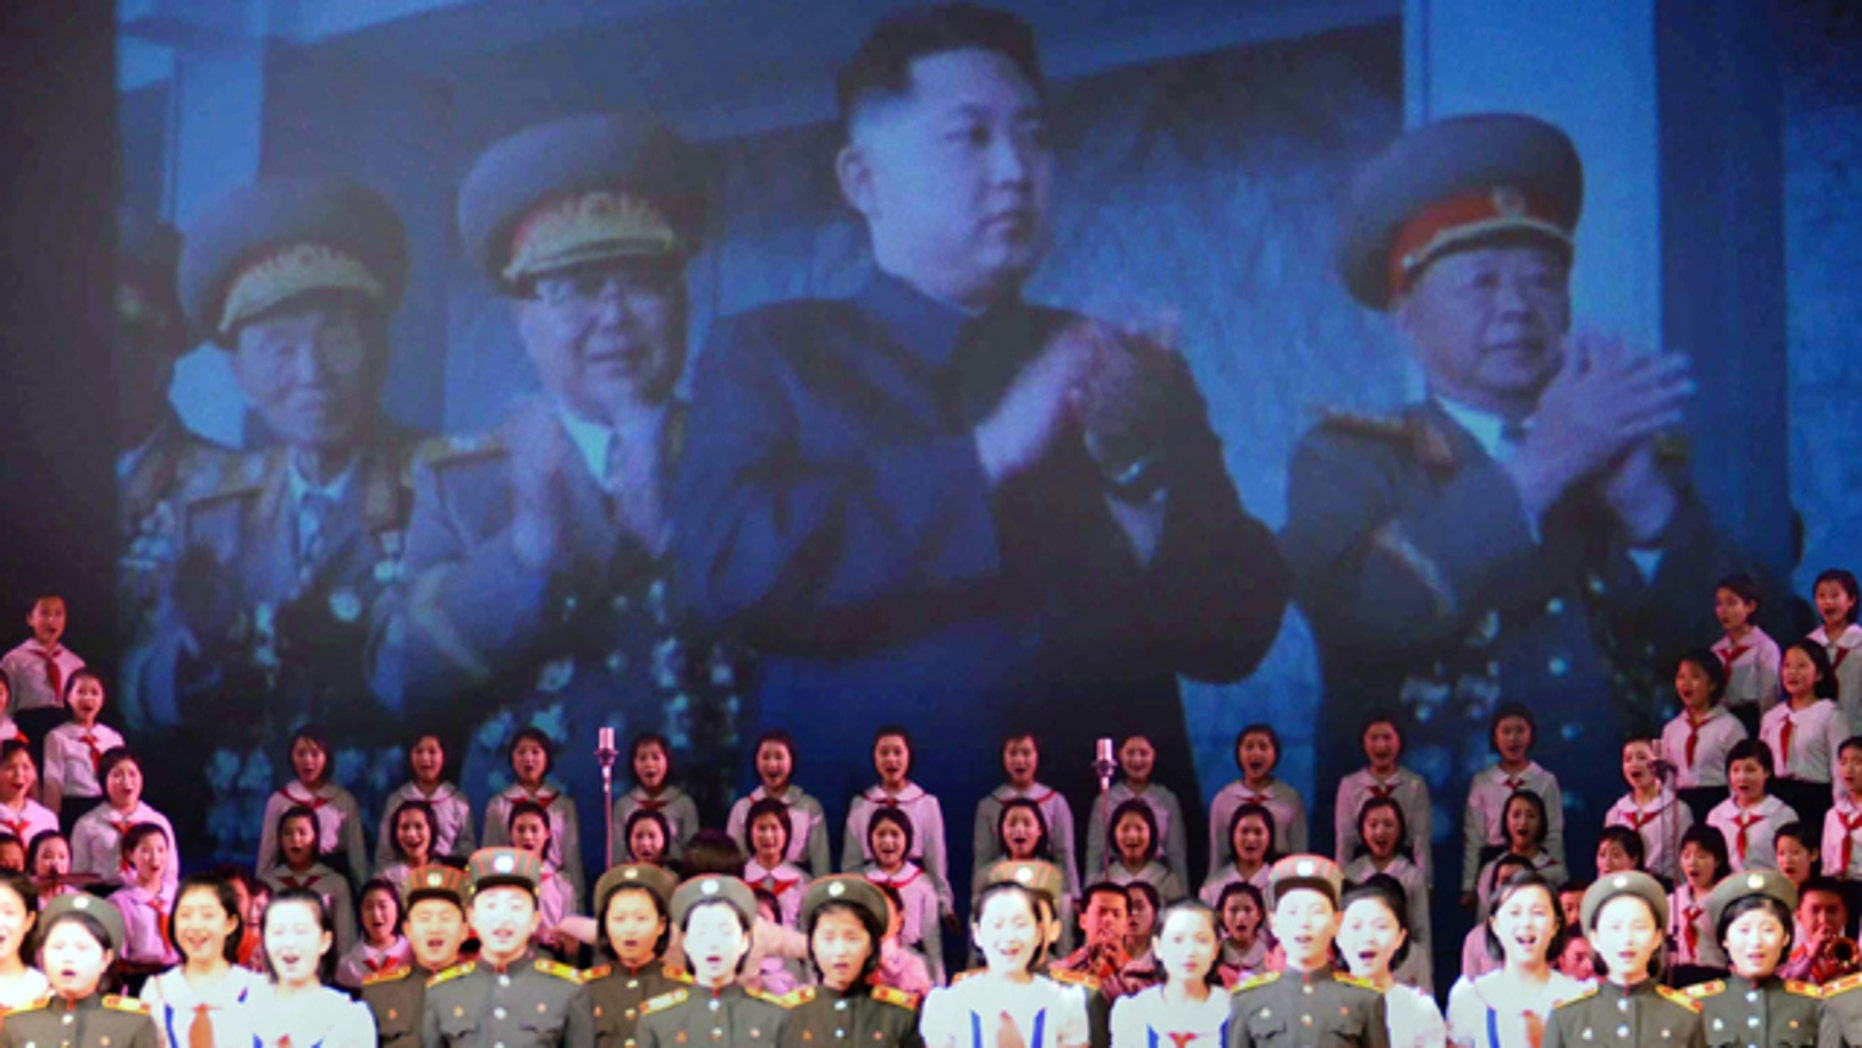 Feb. 16: An image of North Korea's heir apparent Kim Jong Un, center, is shown on the screen during a performance to celebrate the 69th birthday of their leader, Kim Jong Il, in the North Korean capital of Pyongyang.